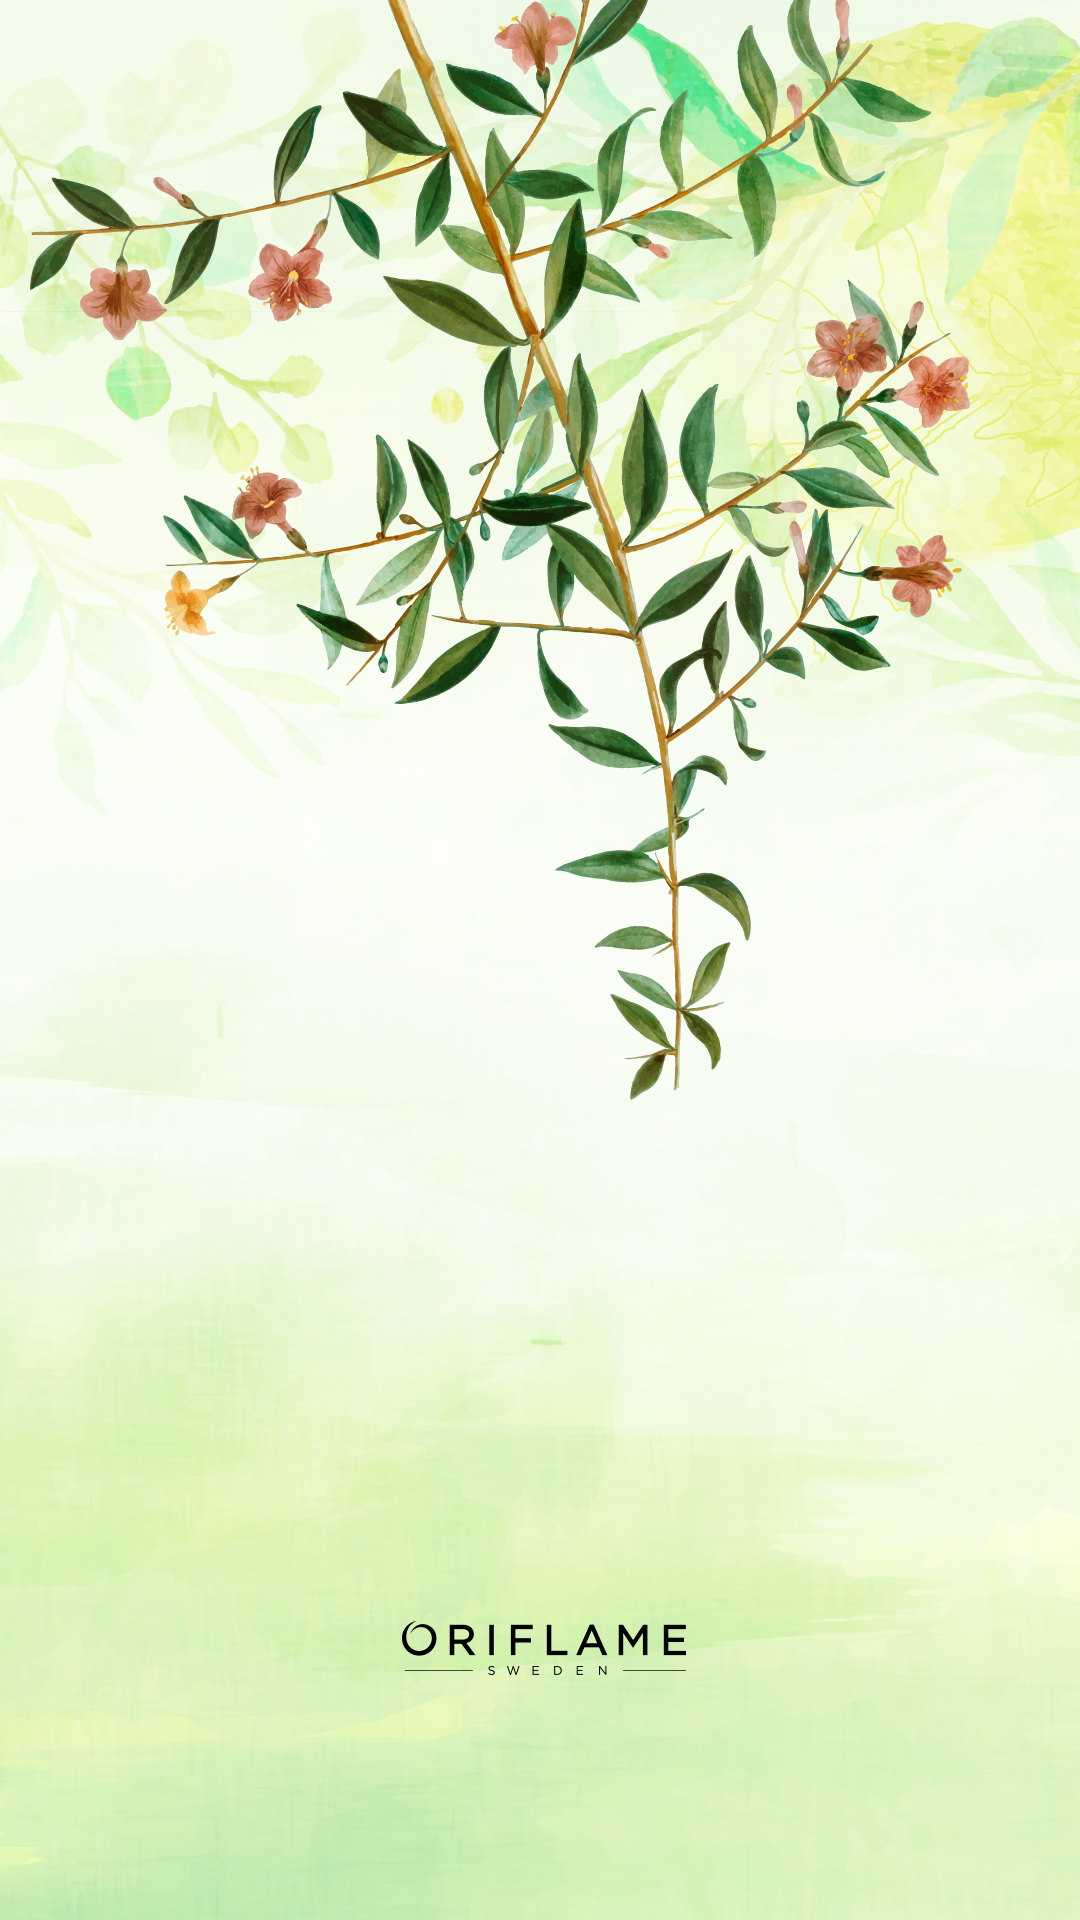 Logo Oriflame Png : oriflame, Backgrounds, #oriflameOriflame, Instagram, Wallpaper,, Background,, Flower